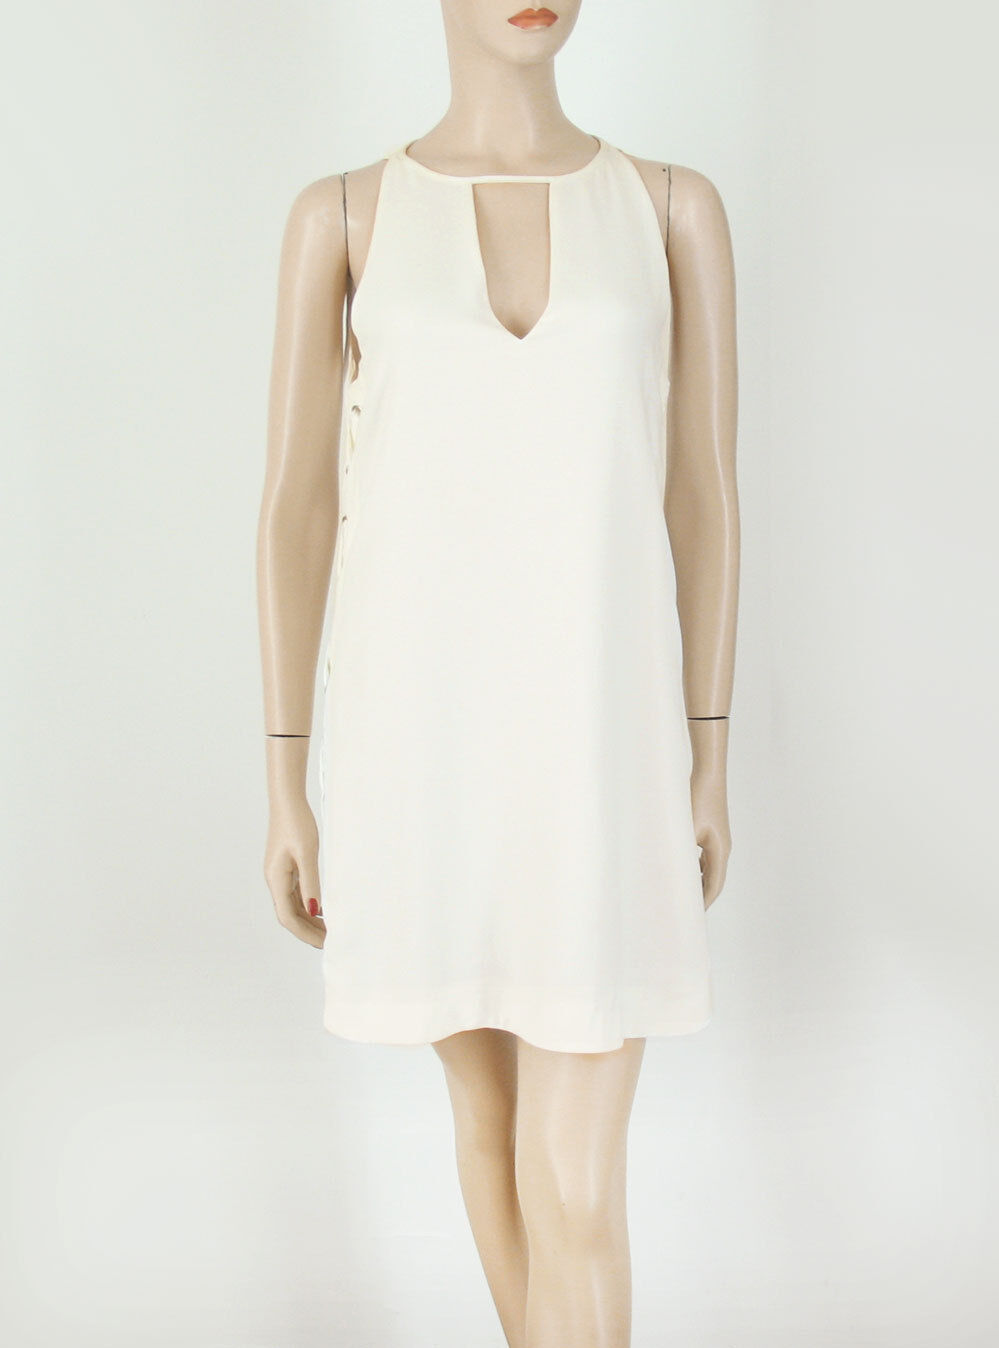 Parker Riviera Side Lace Up Dress Sleeveless Pearl Ivory S 8956 -Minor Flaw